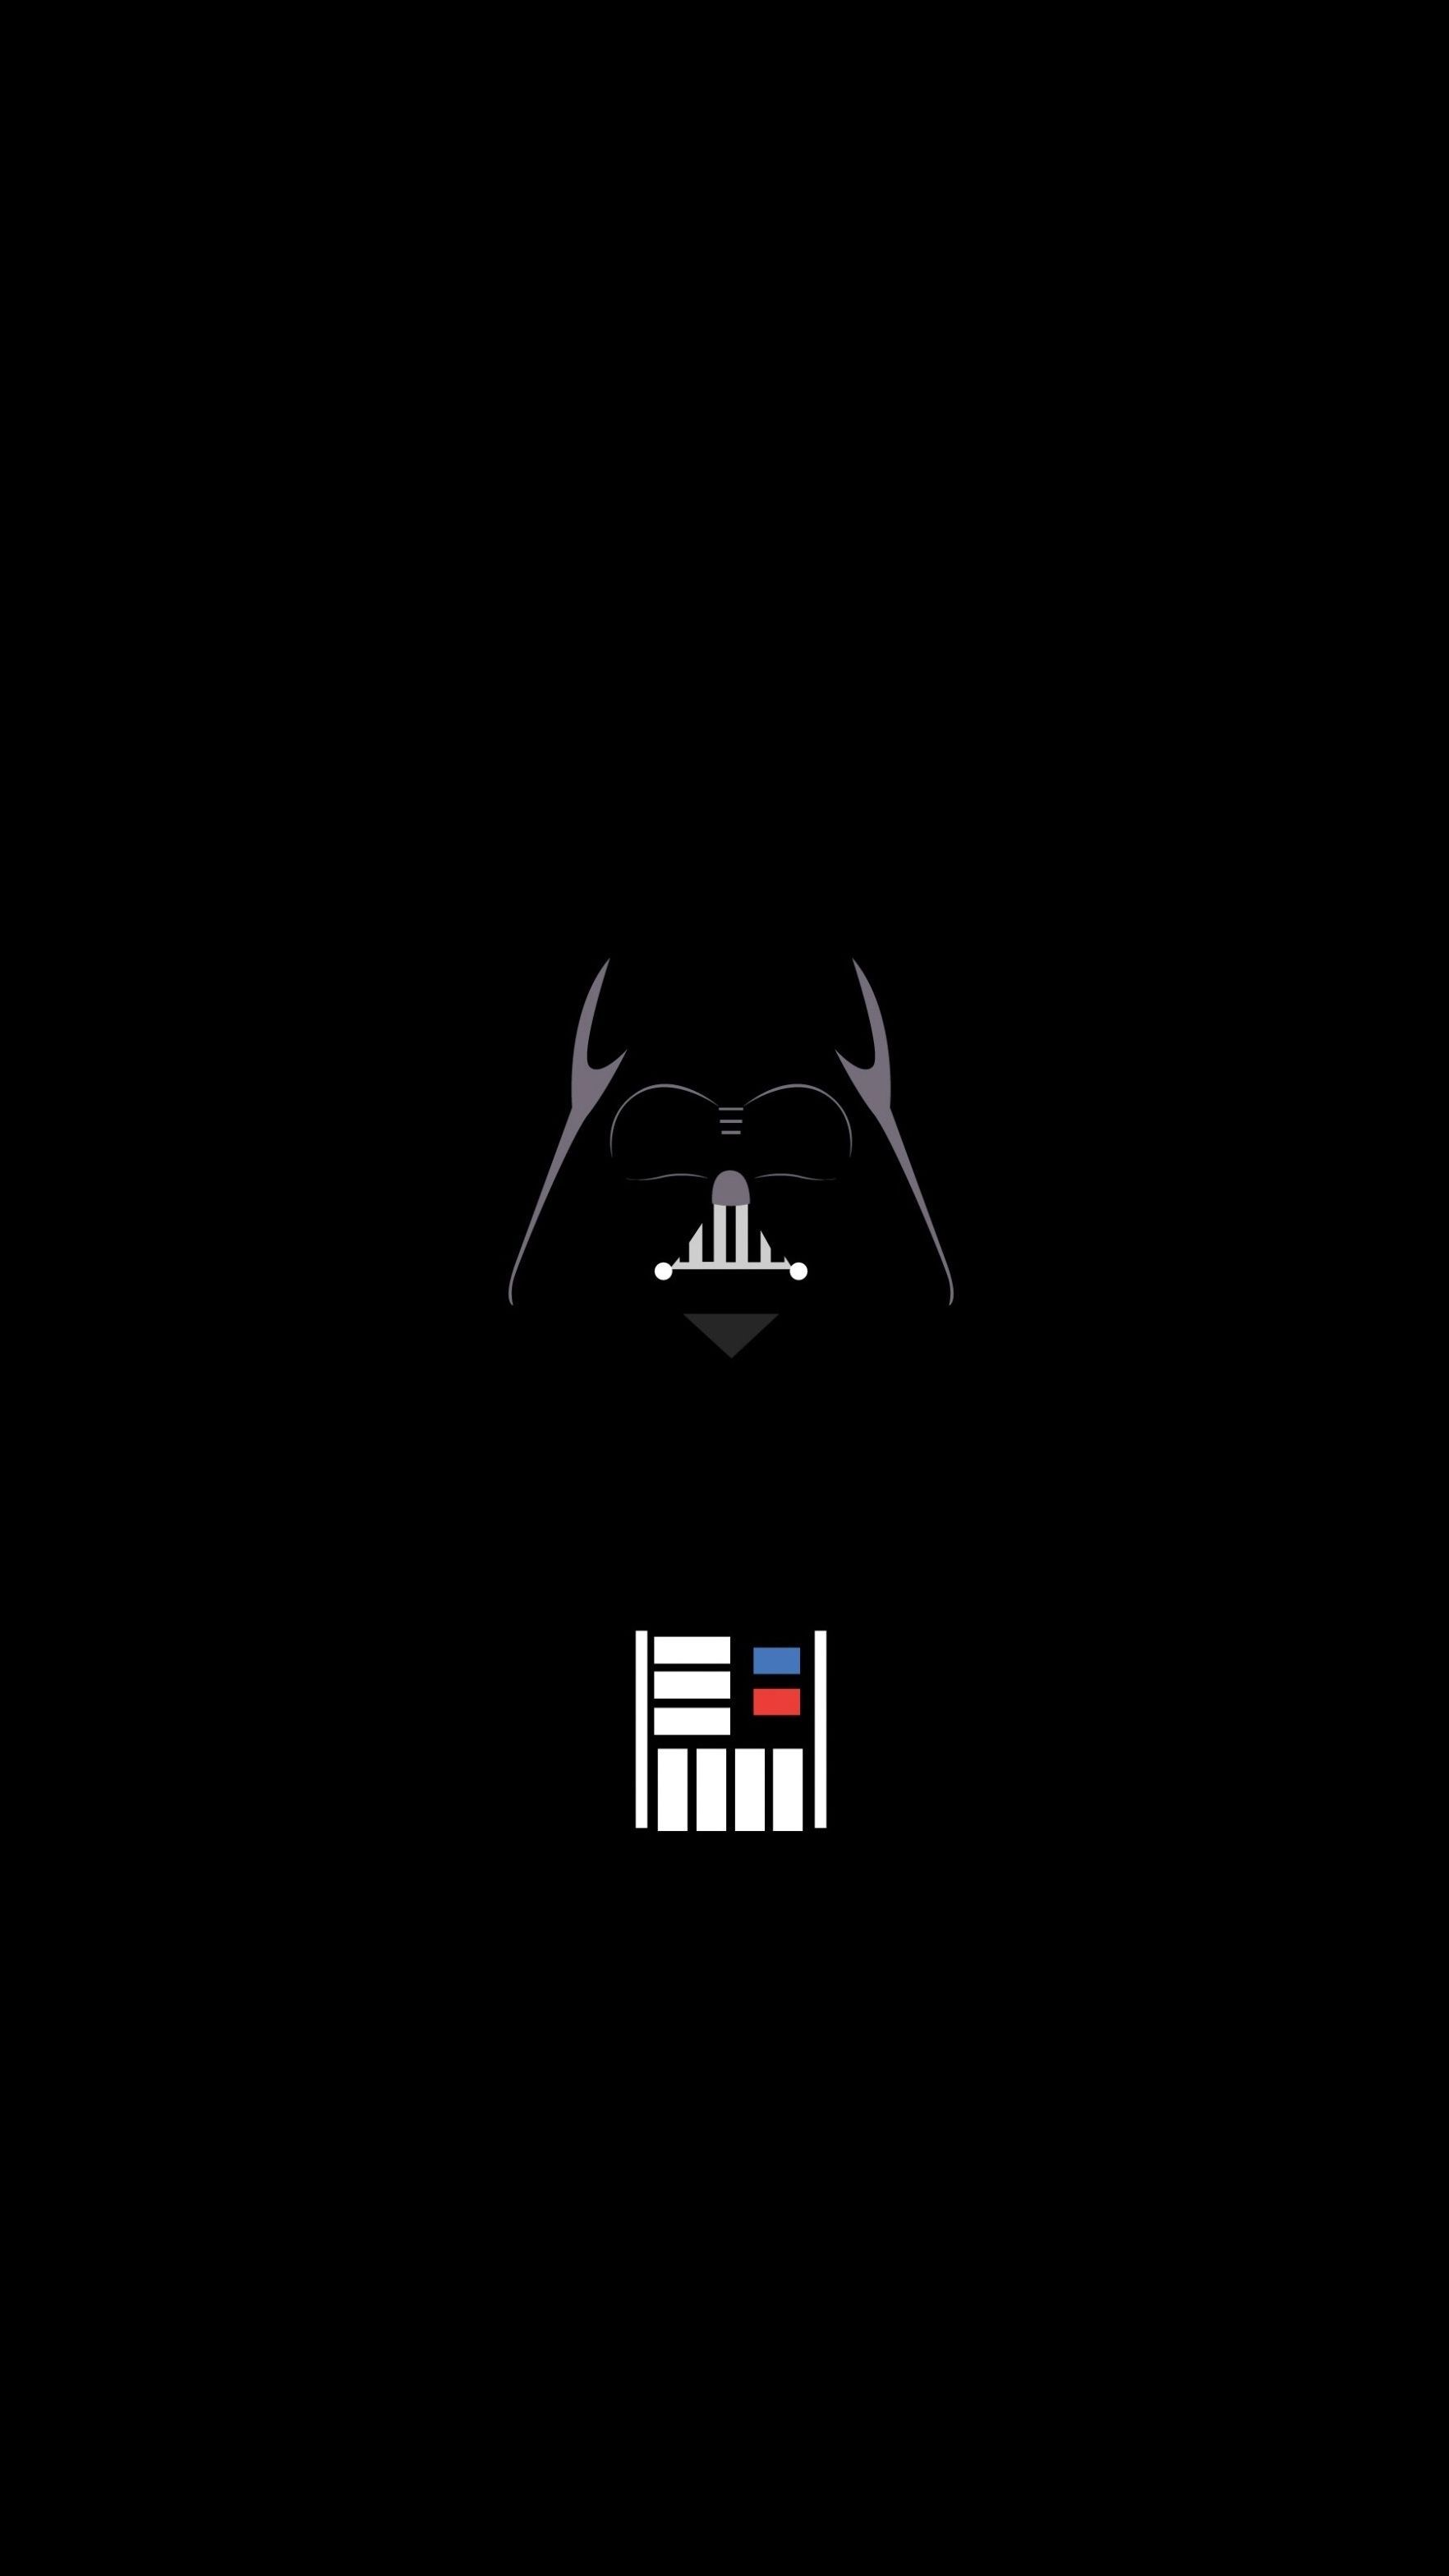 Marvel Wallpaper For Iphone From Uploaded By User Star Wars Background Star Wars Images Star Wars Wallpaper